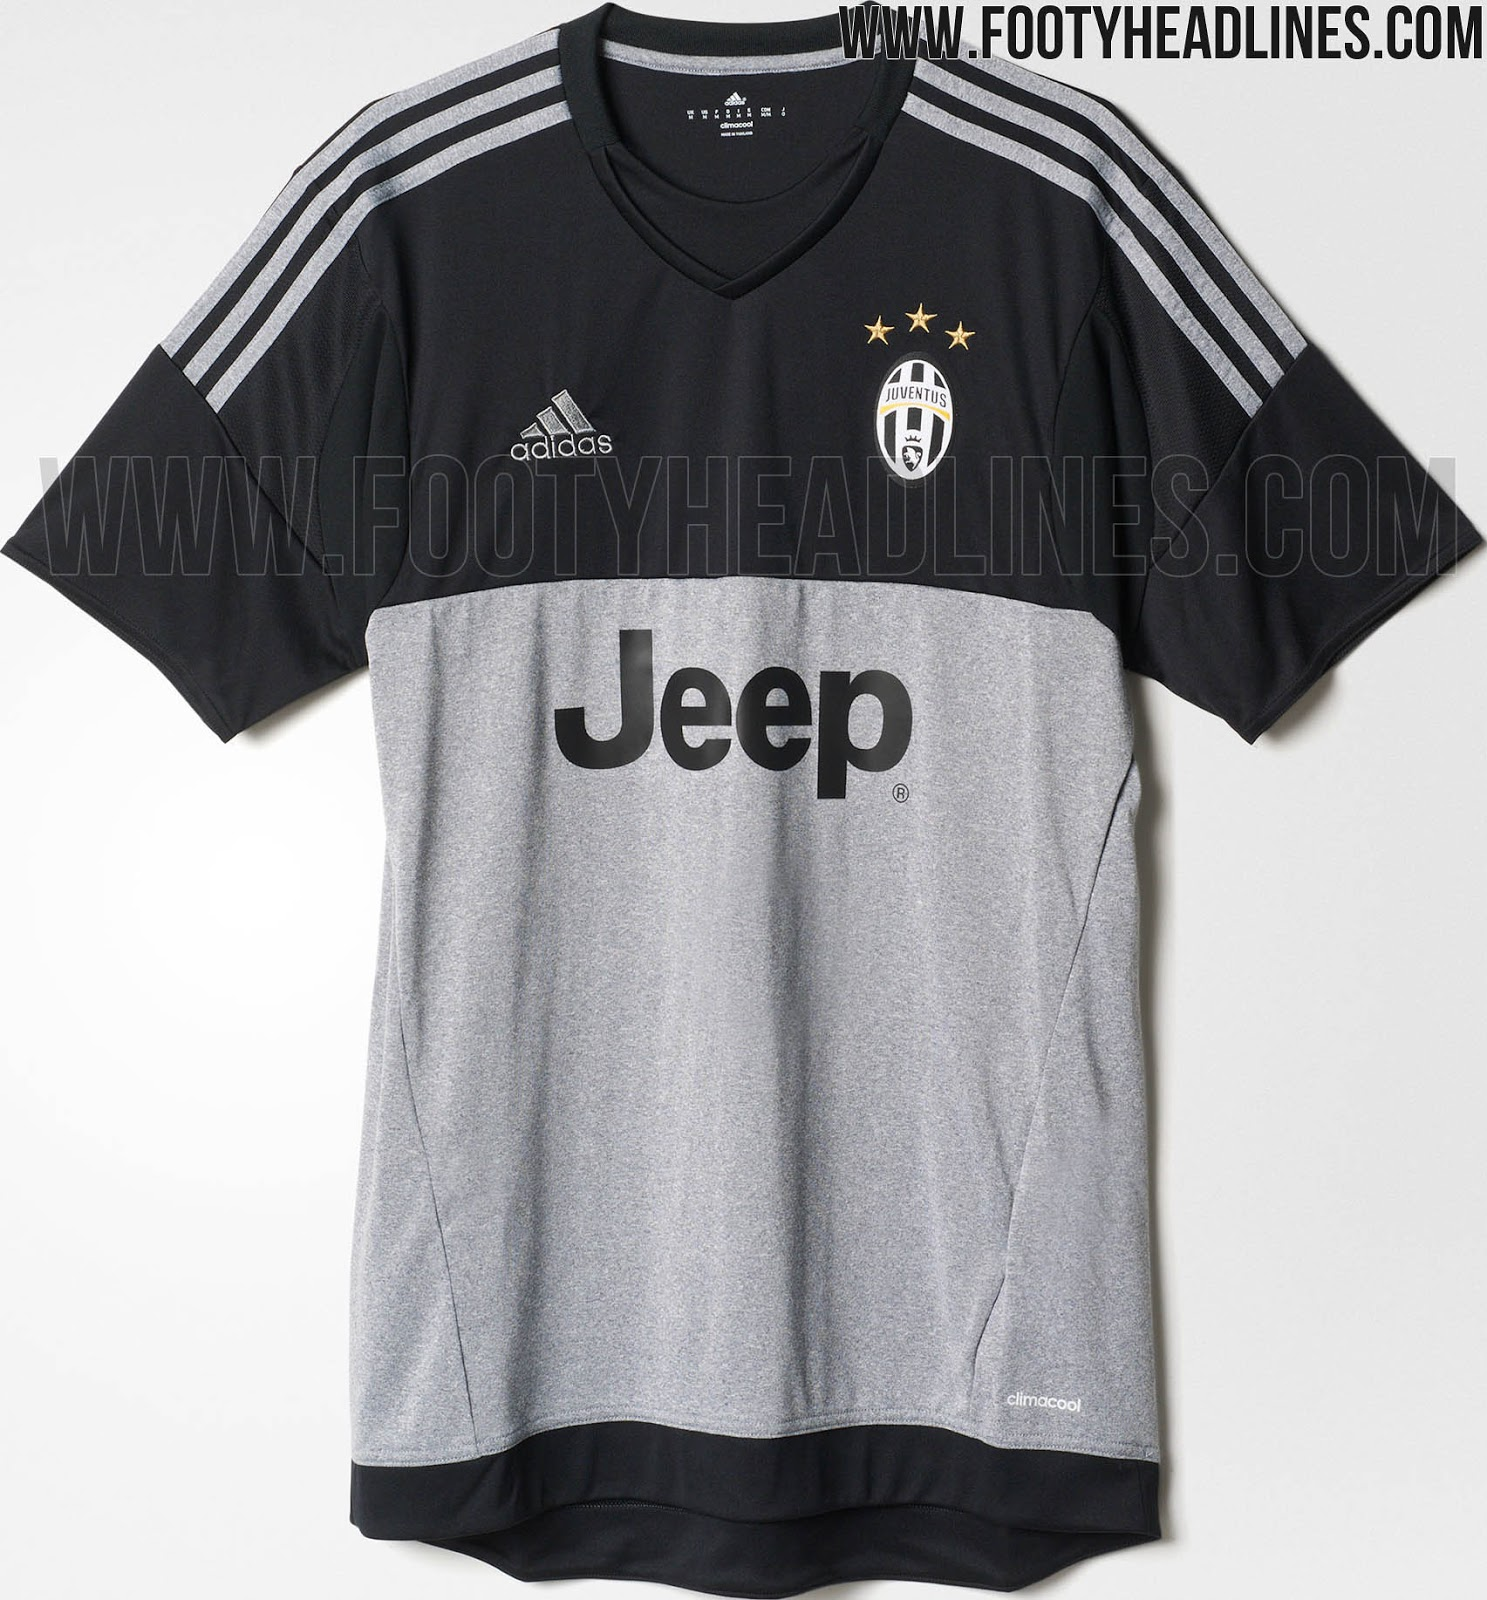 7188fb3f28c buffon juventus jersey on sale   OFF32% Discounts